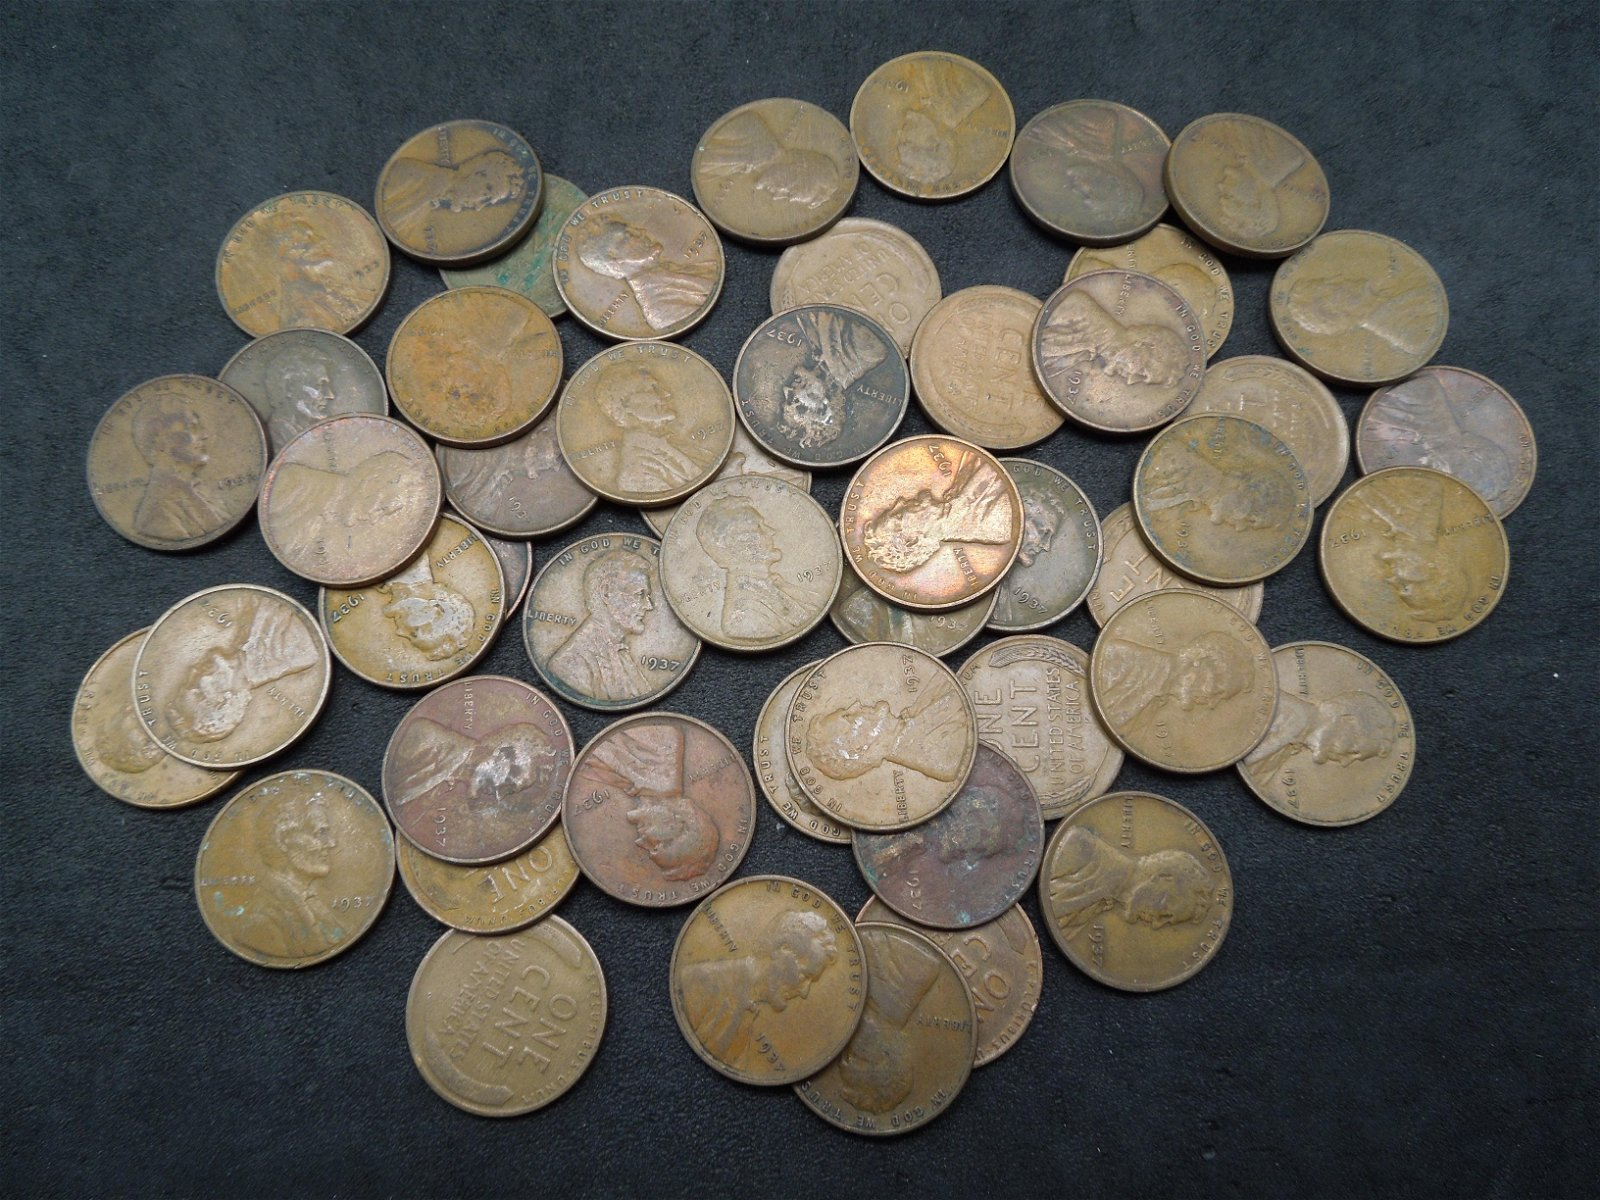 Lot of 50 1937 Lincoln Head Wheat Cents.